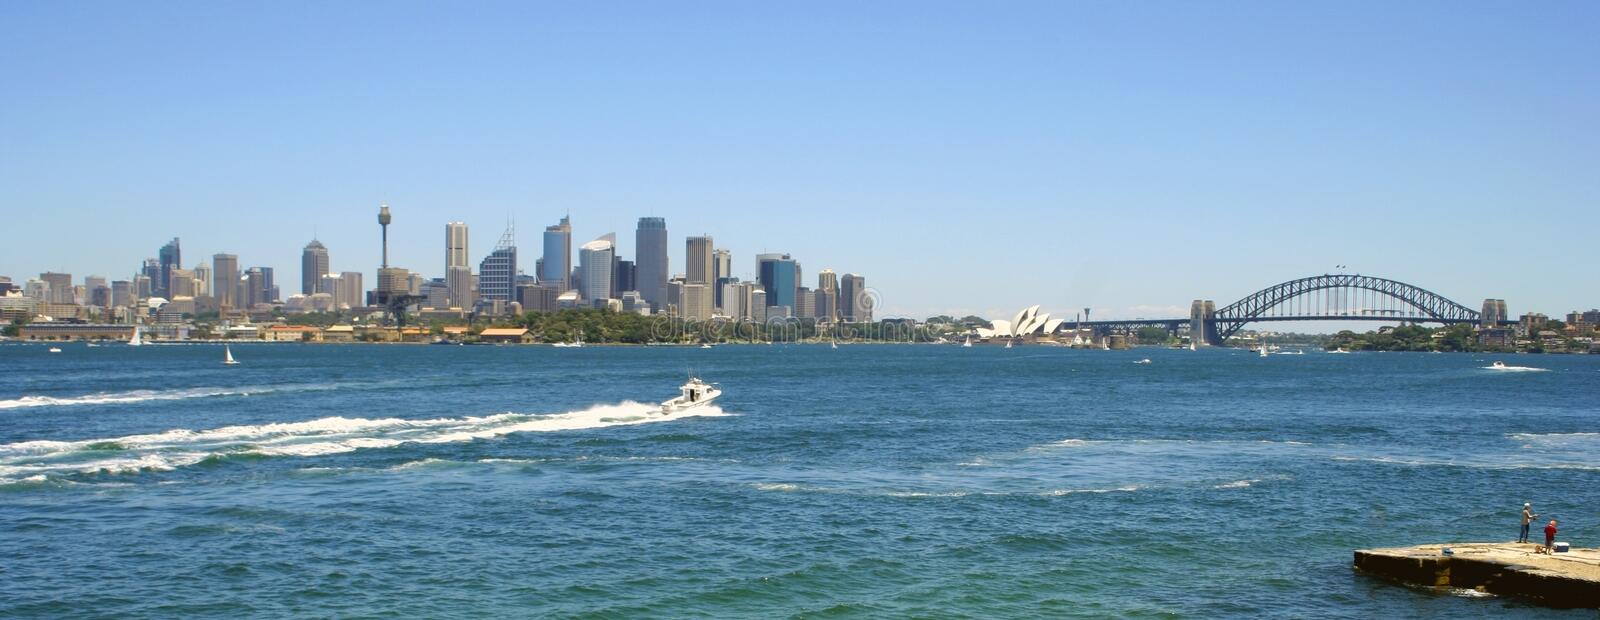 Sydney Harbour, Australia royalty free stock images